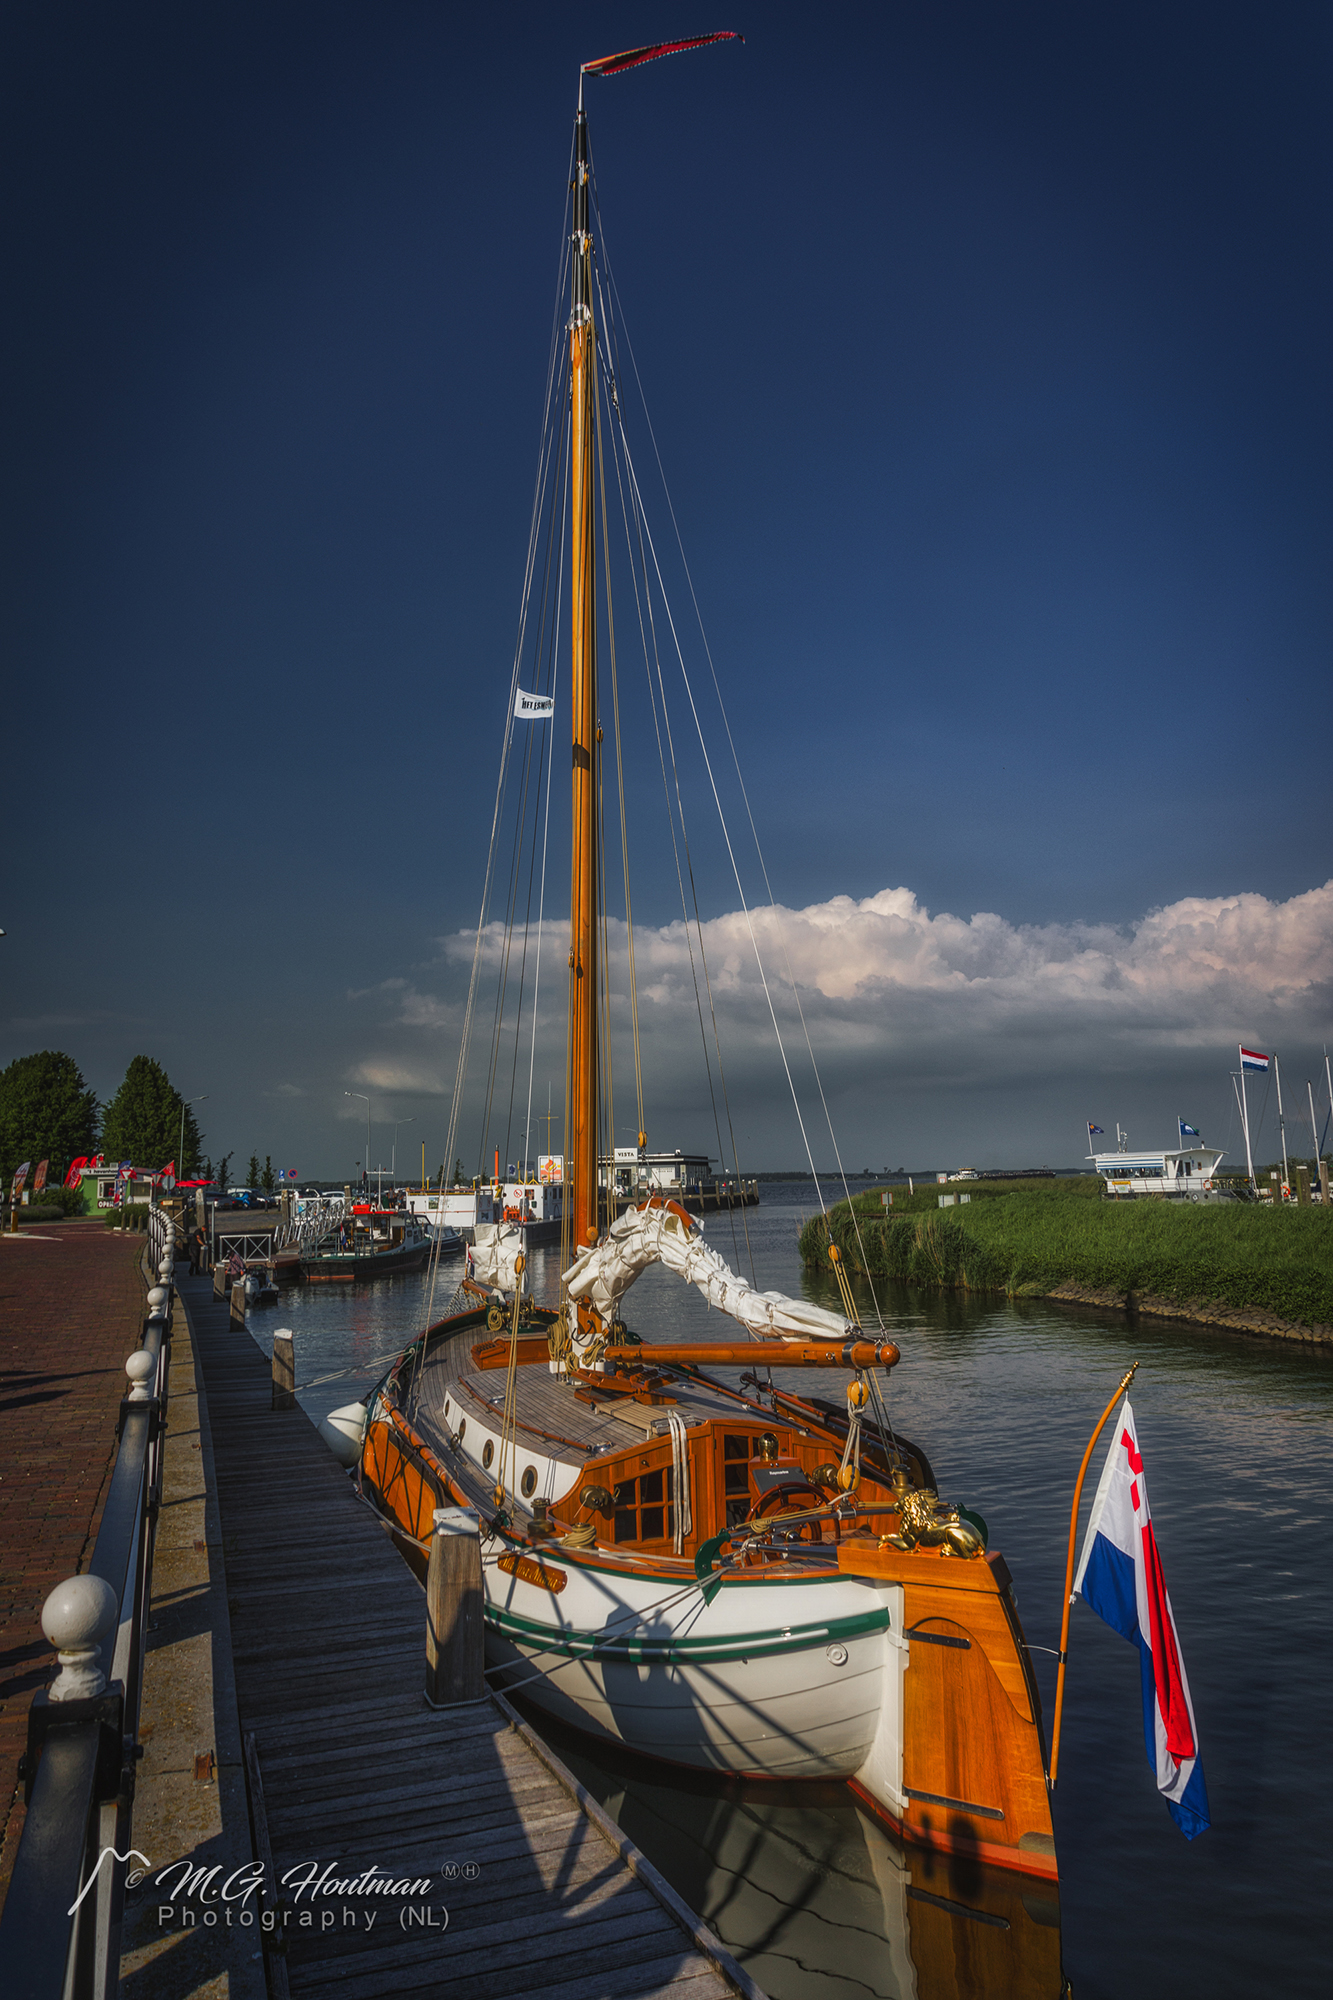 In the port of Willemstad (NL)